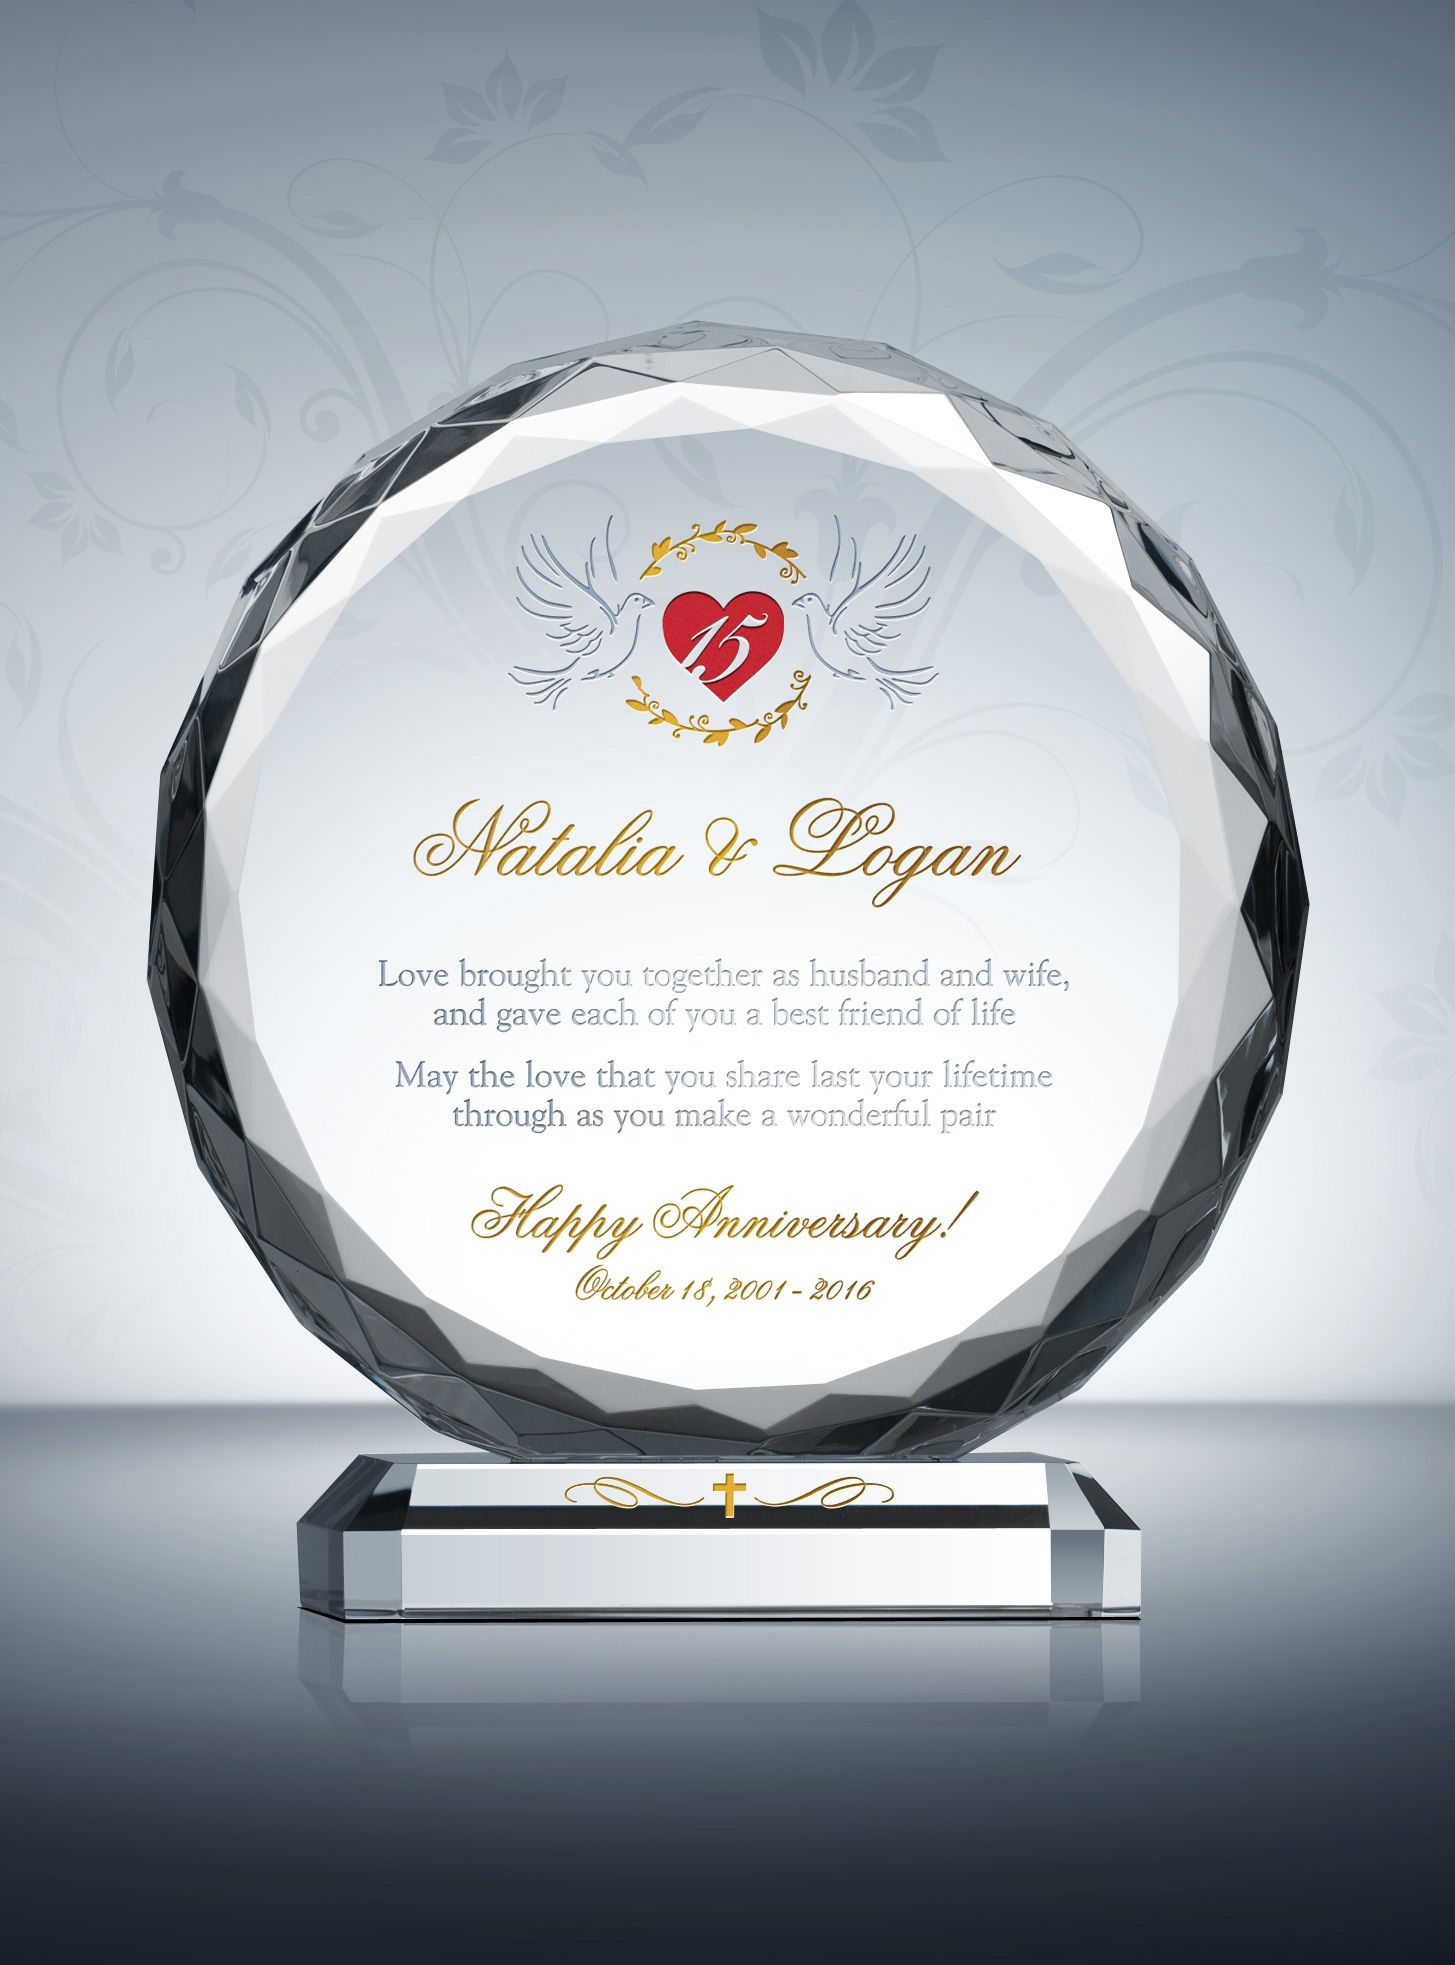 15th Crystal Wedding Anniversary Gifts Wedding Anniversary Gifts